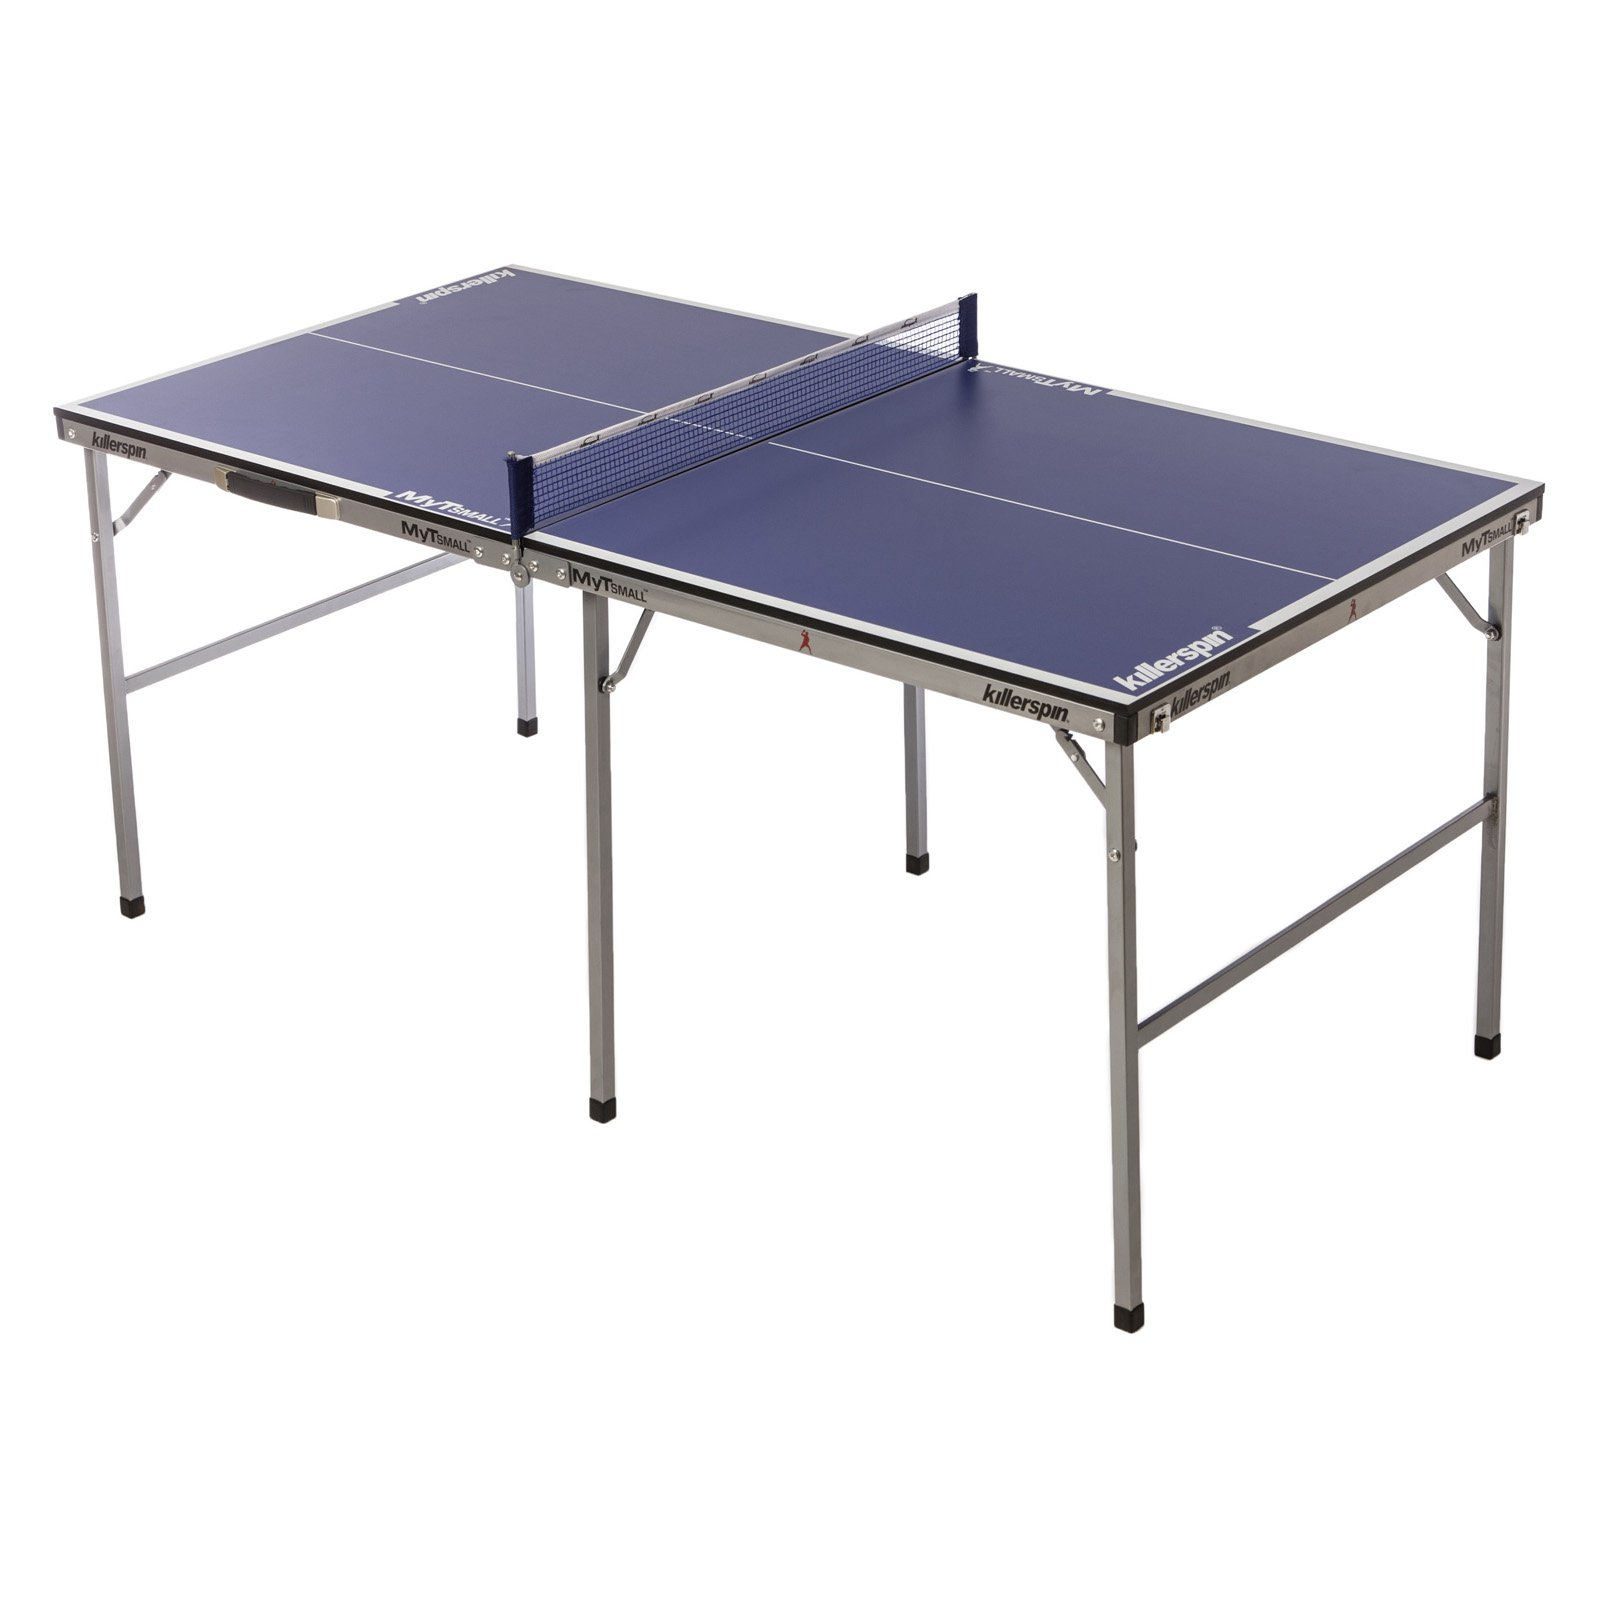 Killerspin MyT Small Table Tennis Table   Walmart.com